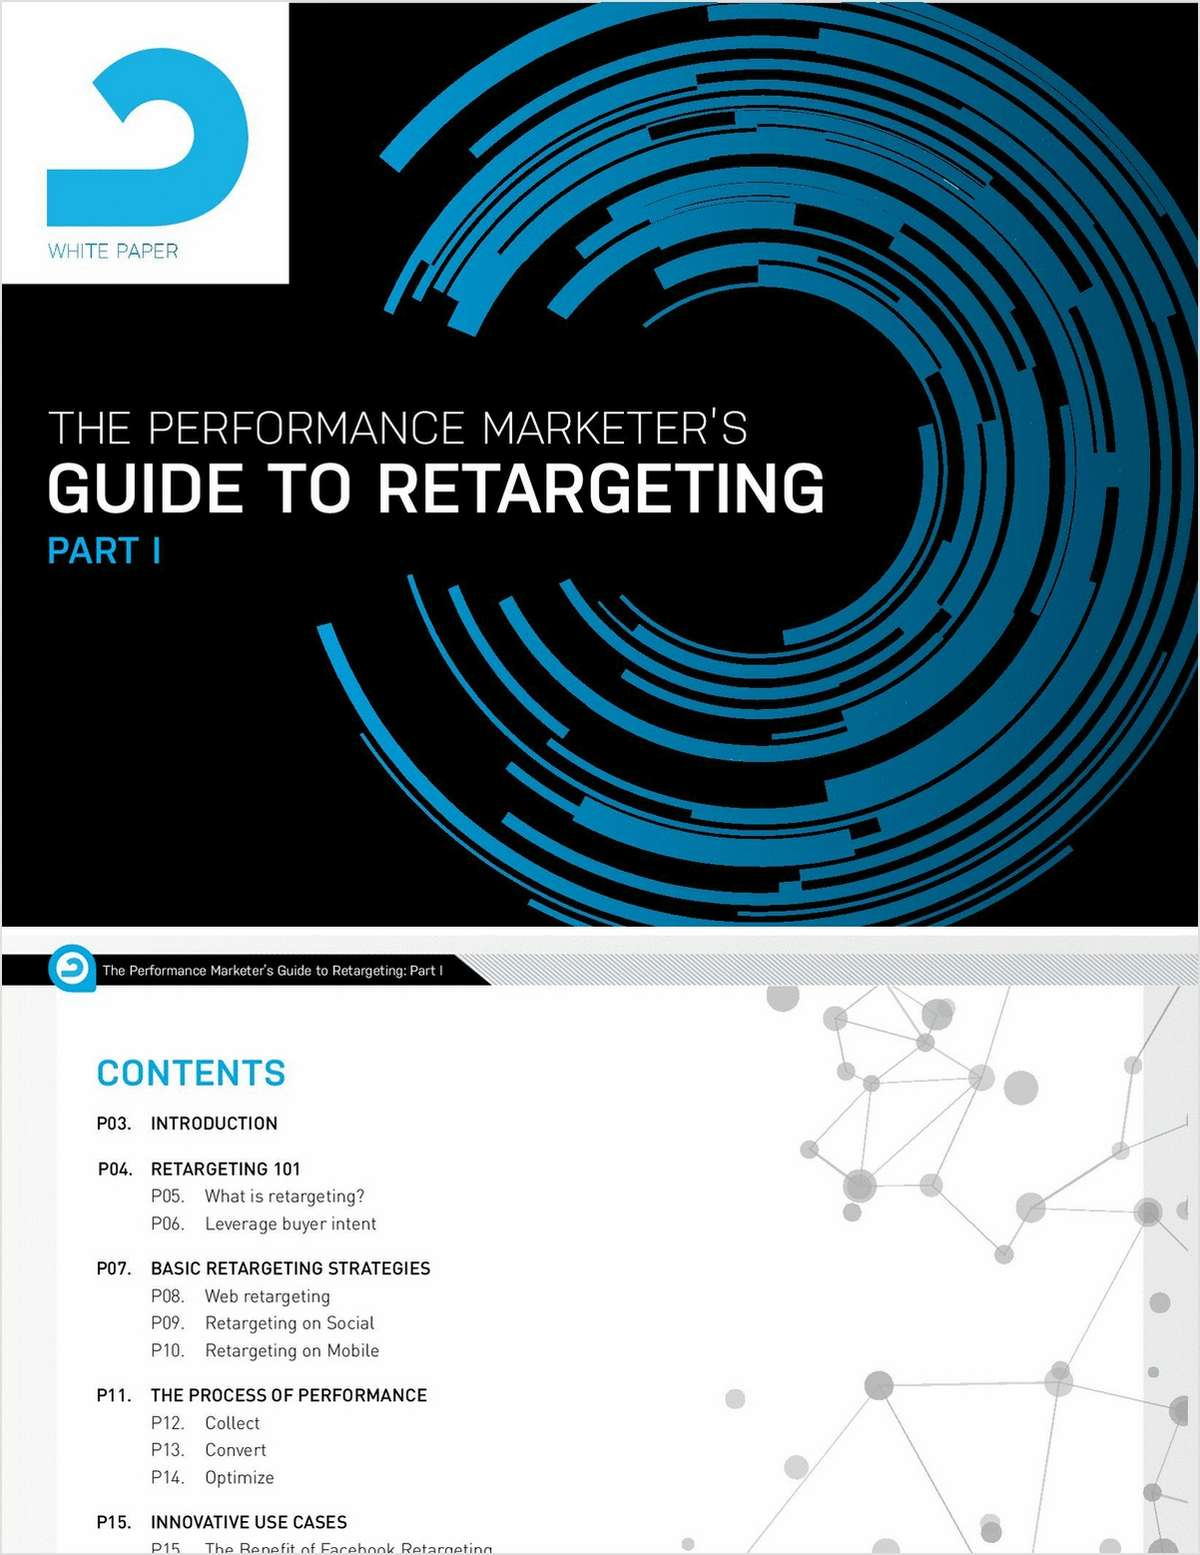 The Performance Marketer's Guide to Retargeting: Part 1